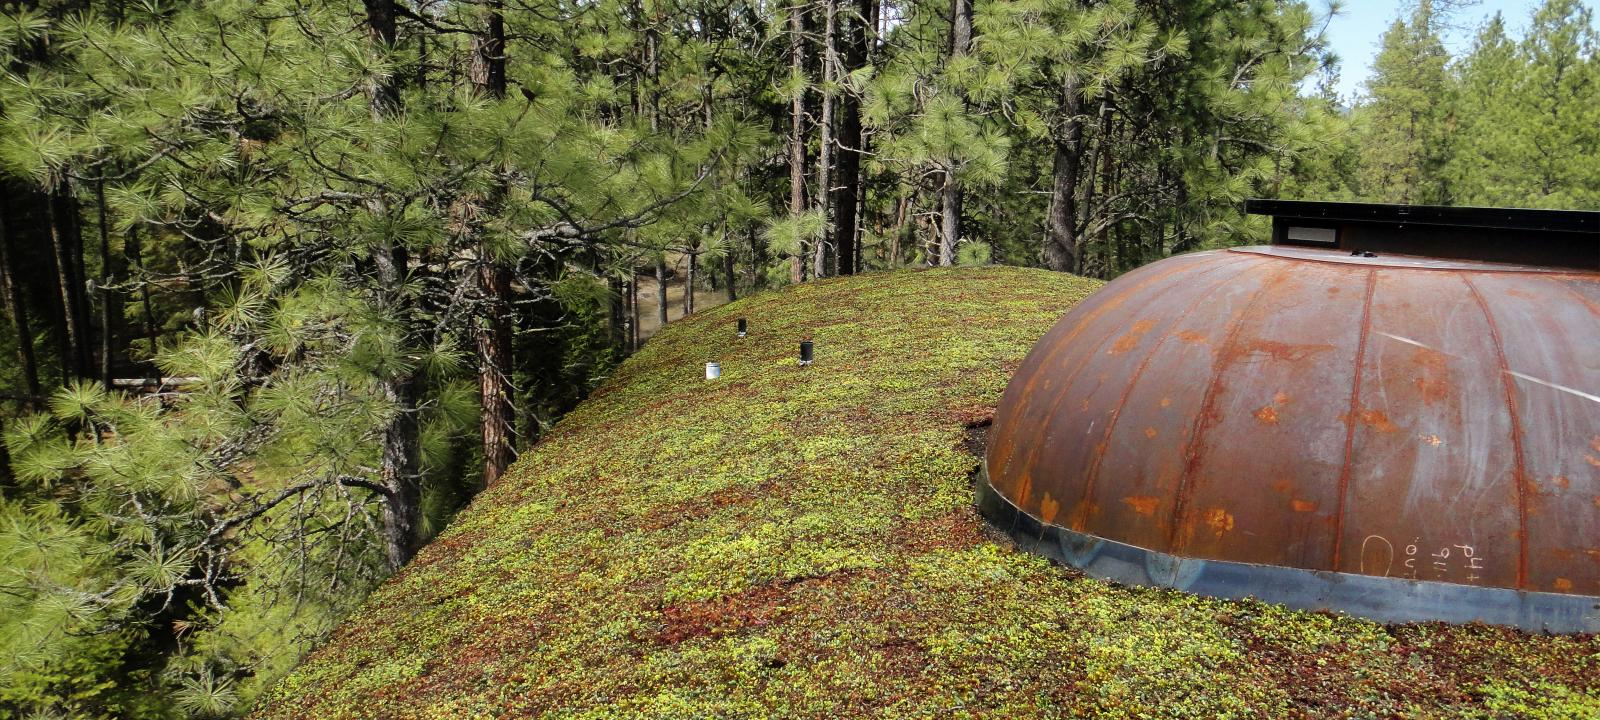 Sloped green roof surrounded by trees